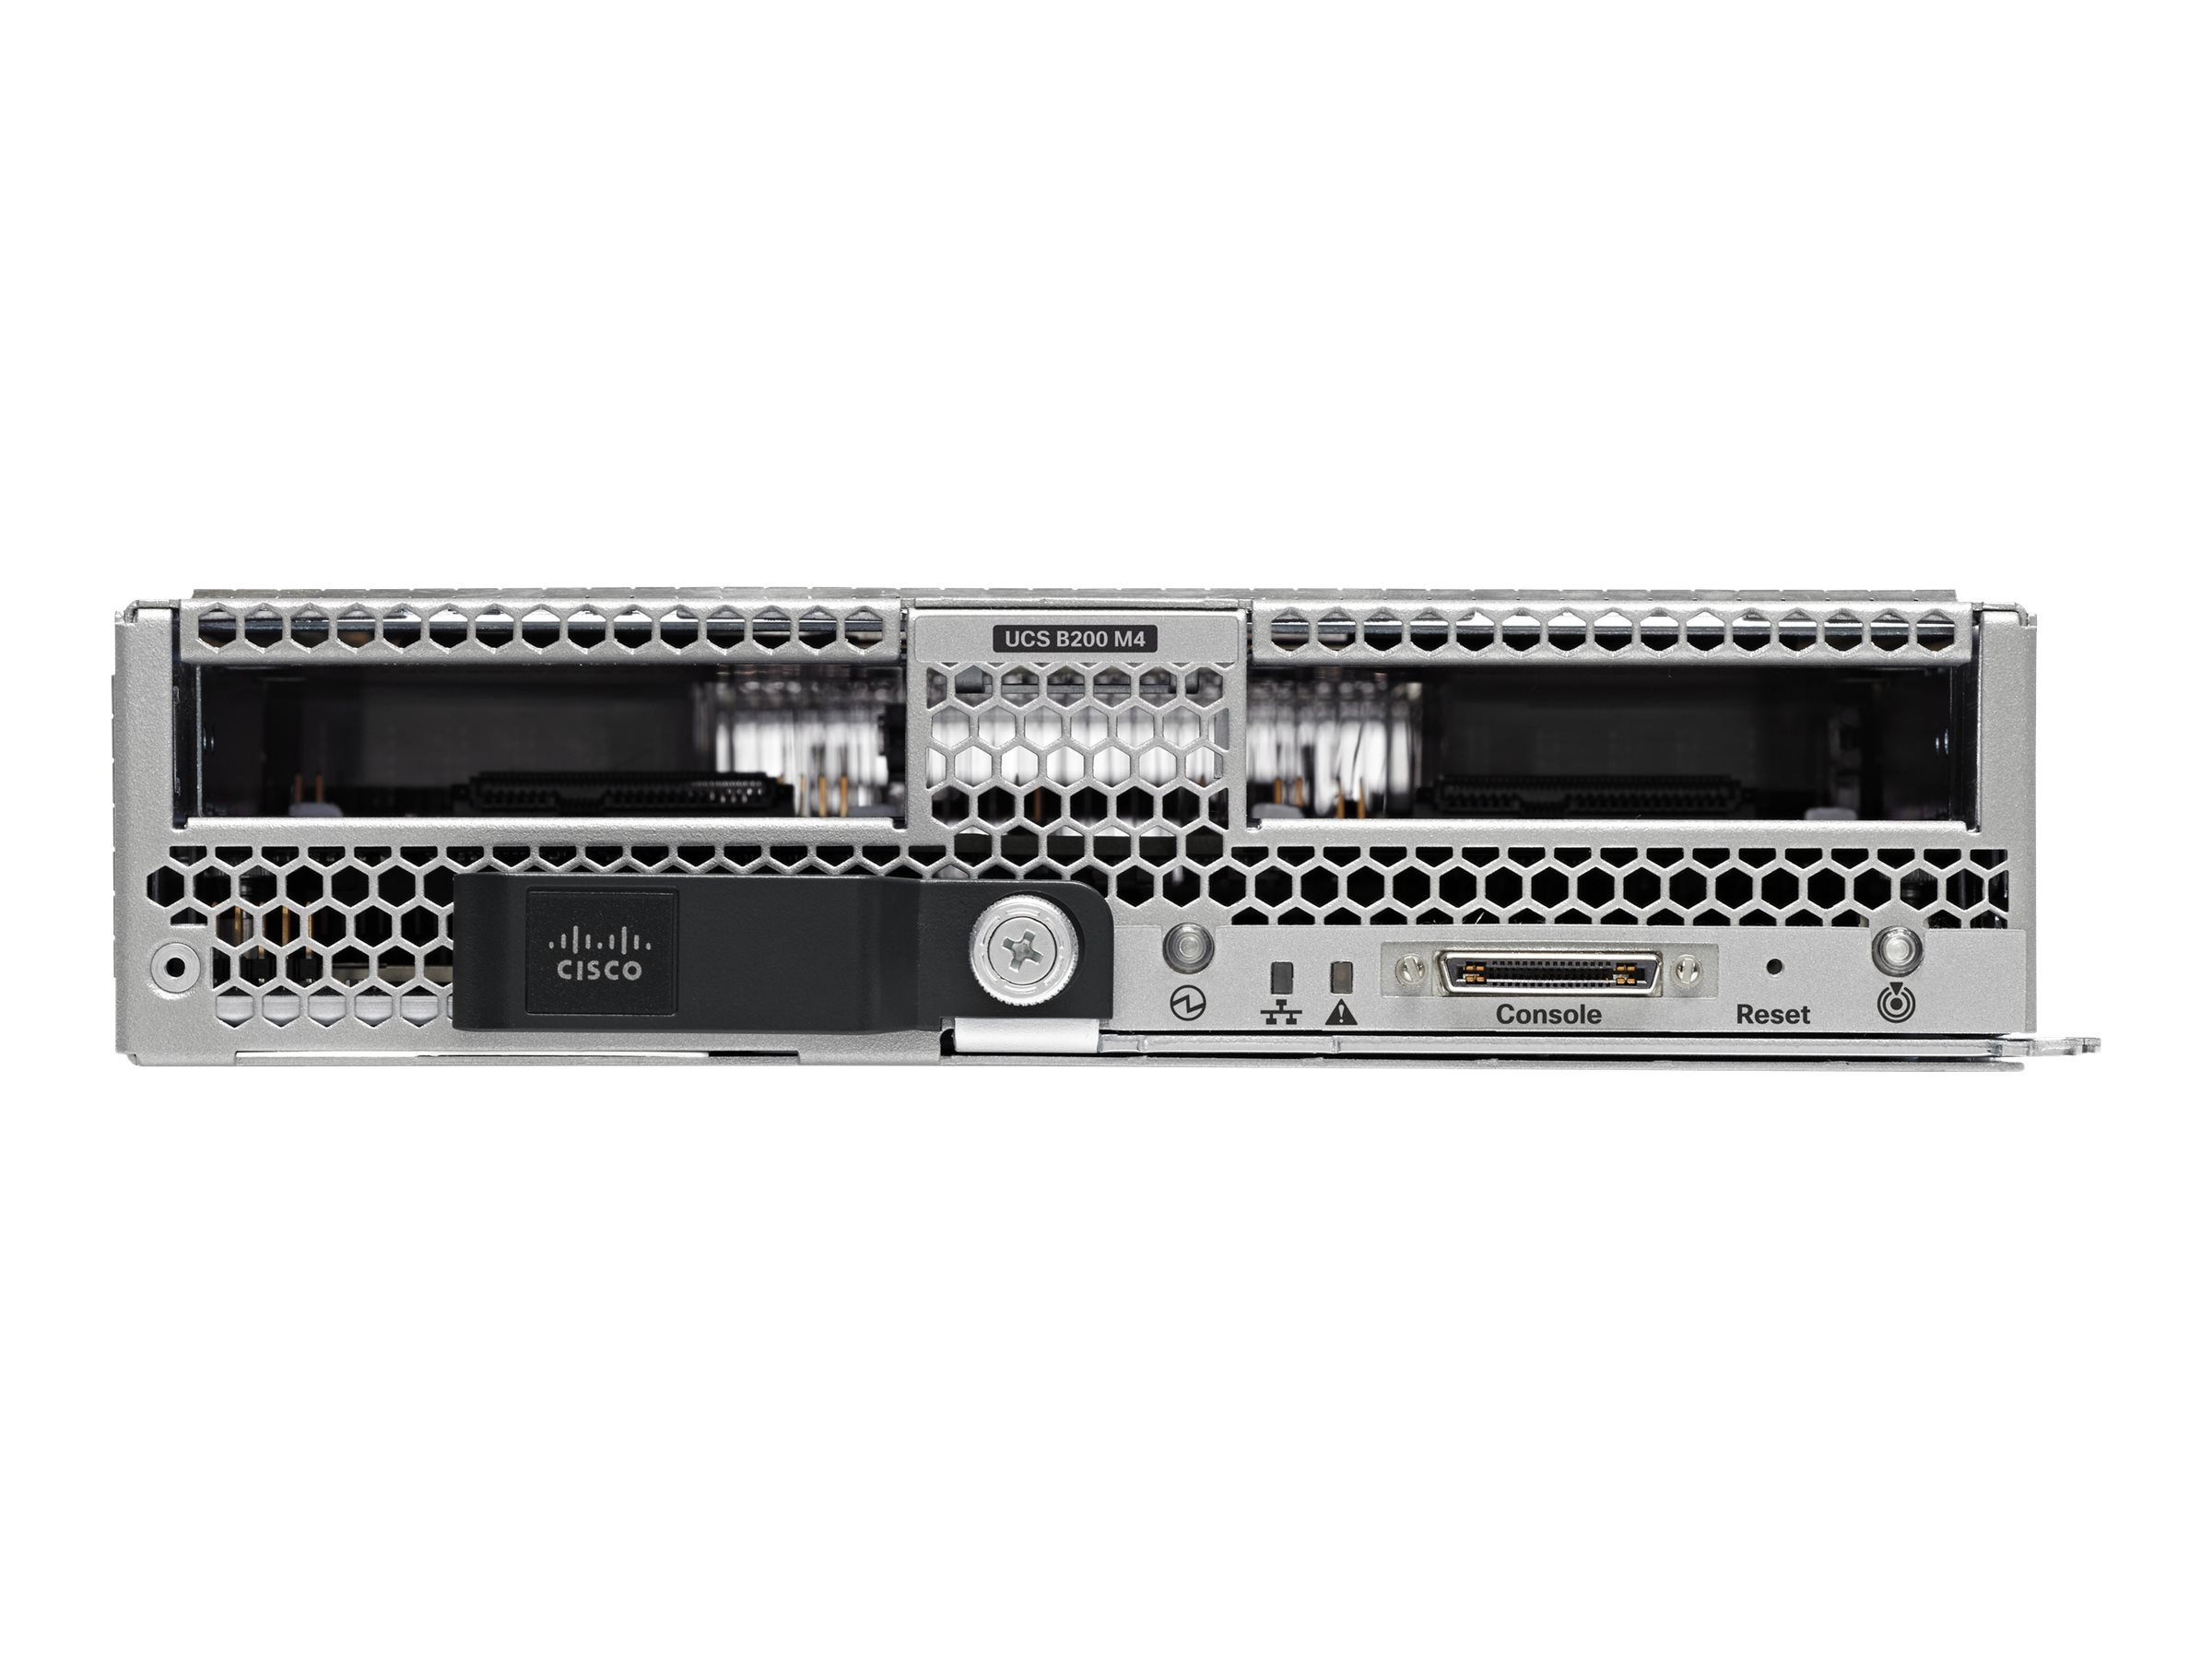 Cisco UCS-SP-B200M4-F2 Image 1